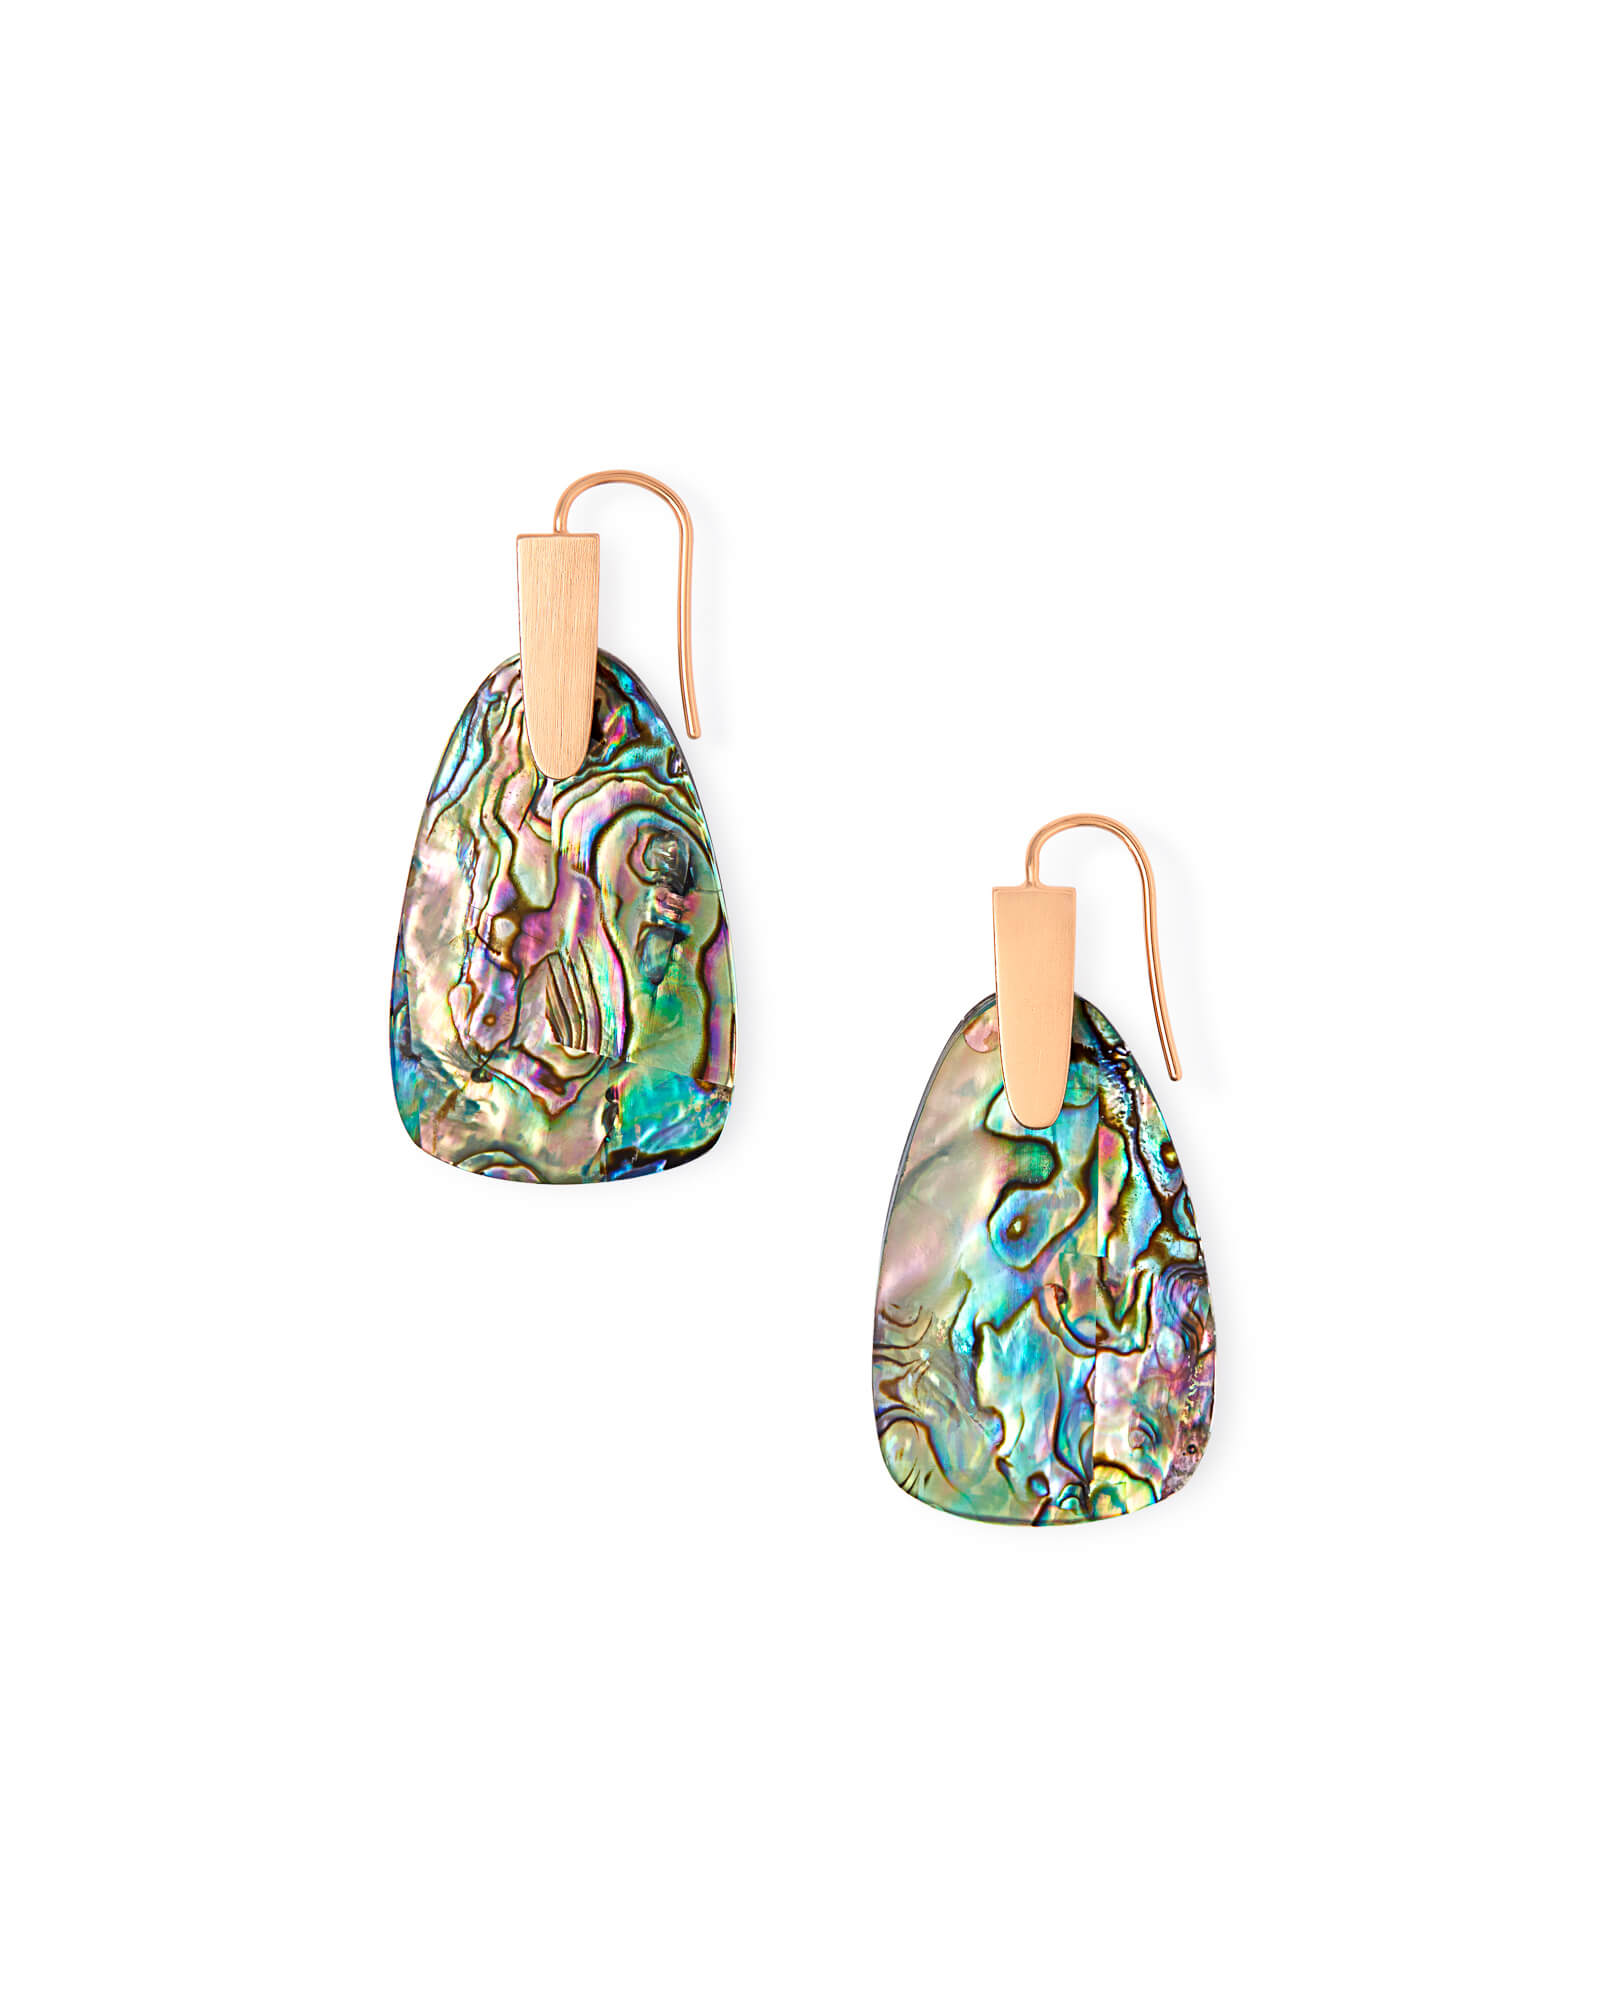 Marty Rose Gold Drop Earrings in Abalone Shell